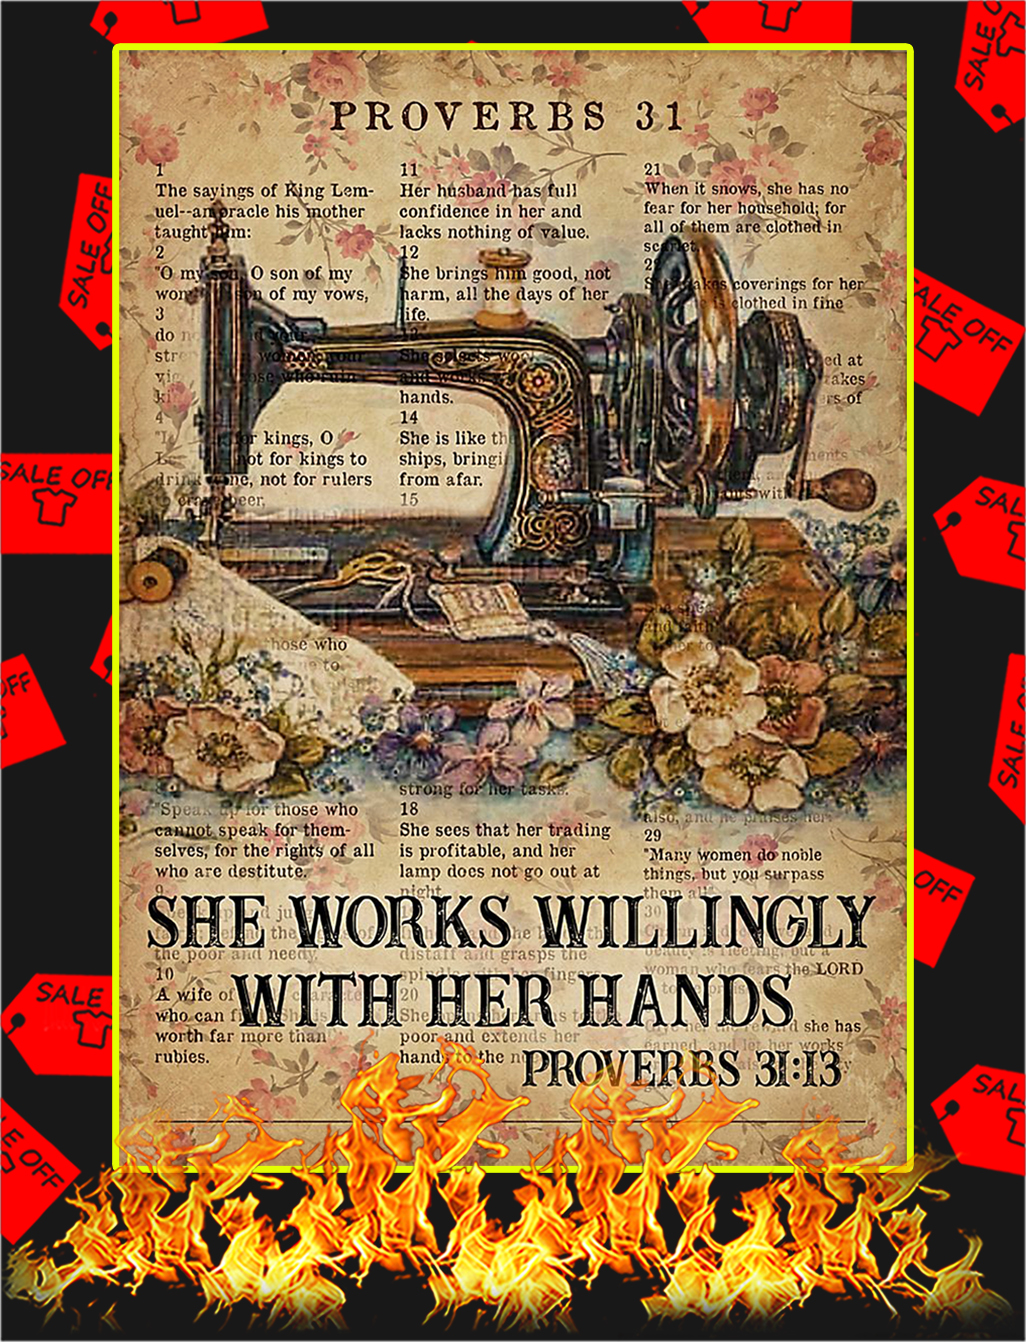 Sewing She works willingly with her hands poster - A2